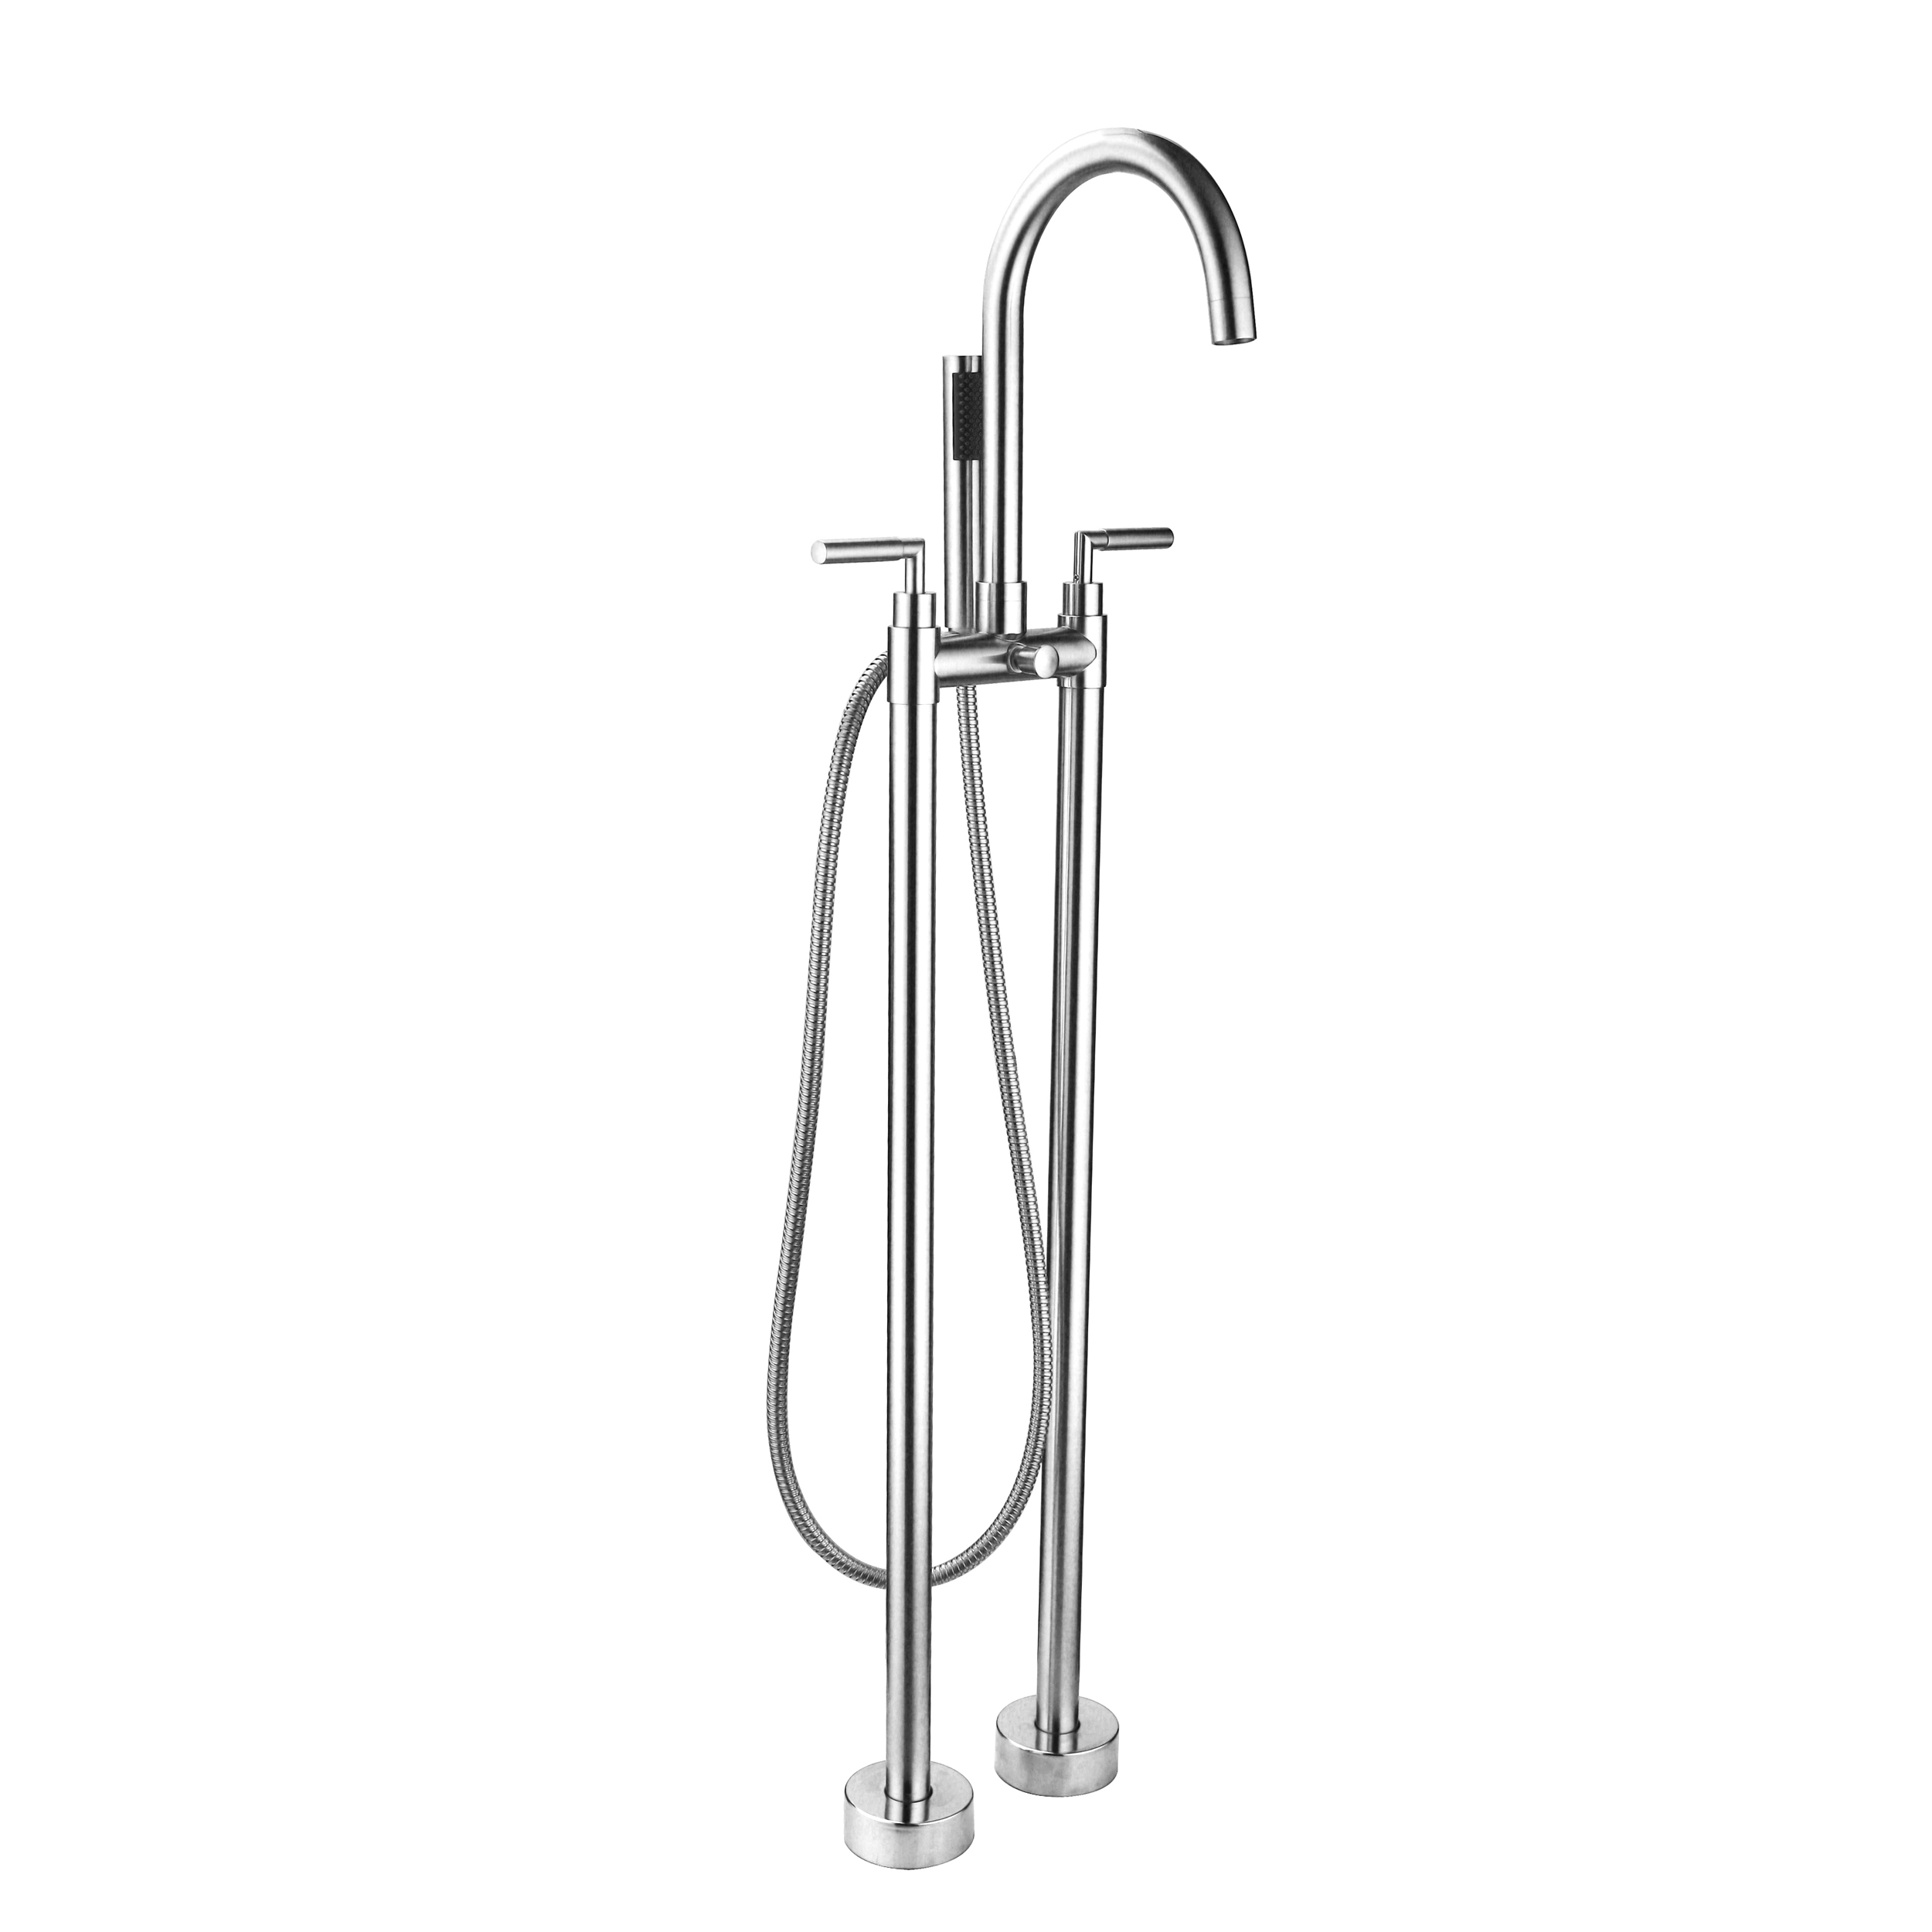 EVSH322CH A Main - Eviva Alexa Free Standing Tub Filler in Chrome Finish